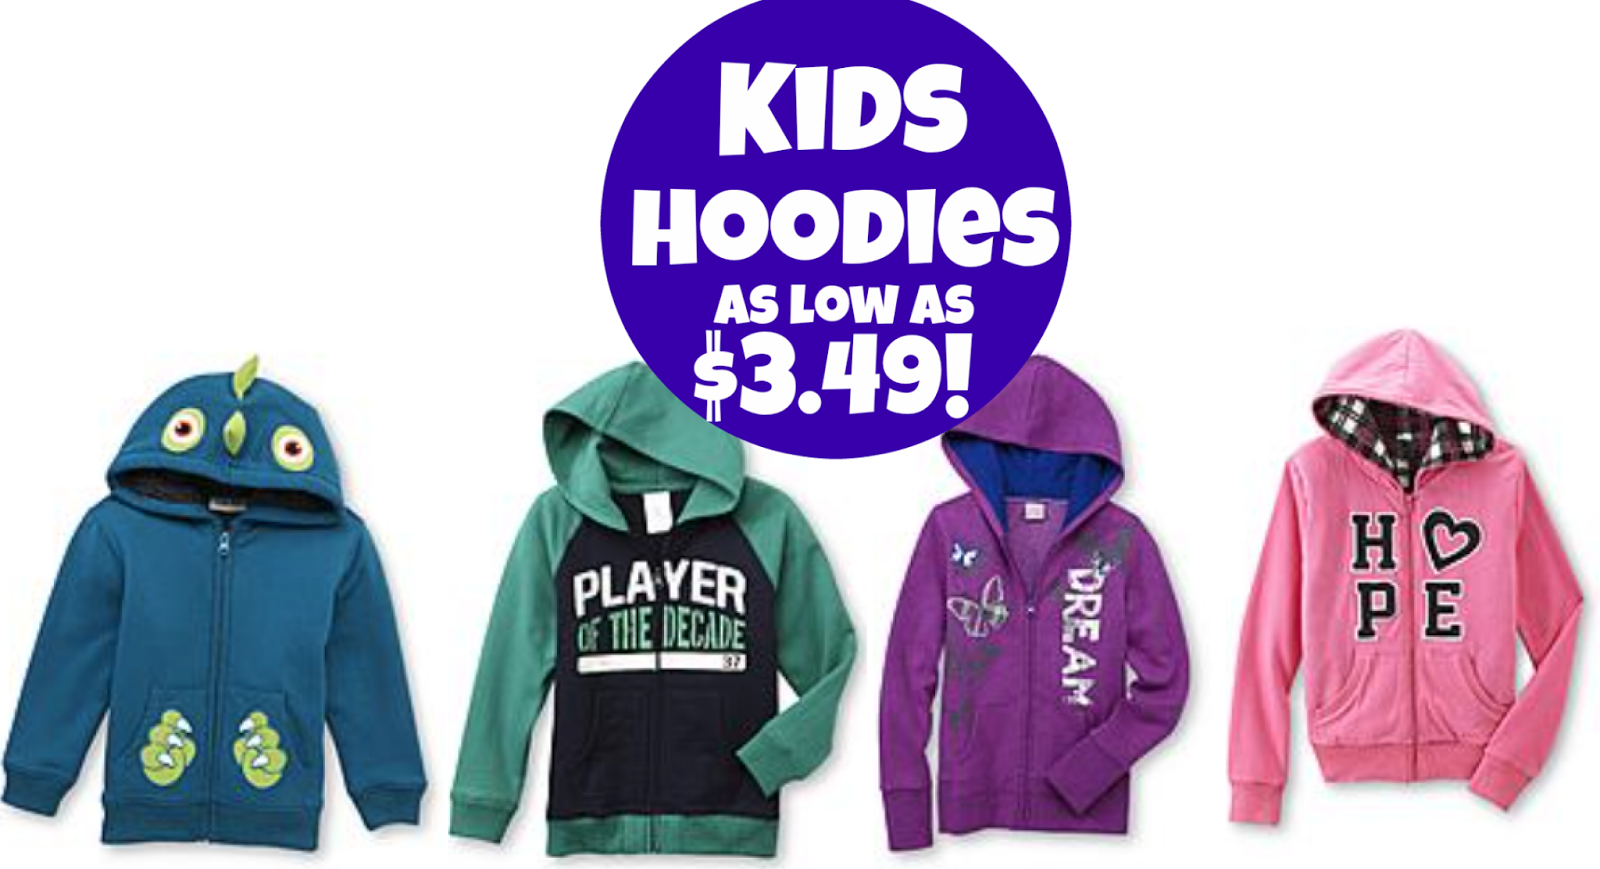 http://www.thebinderladies.com/2015/02/hot-sears-com-boys-girls-hoodies-as-low.html